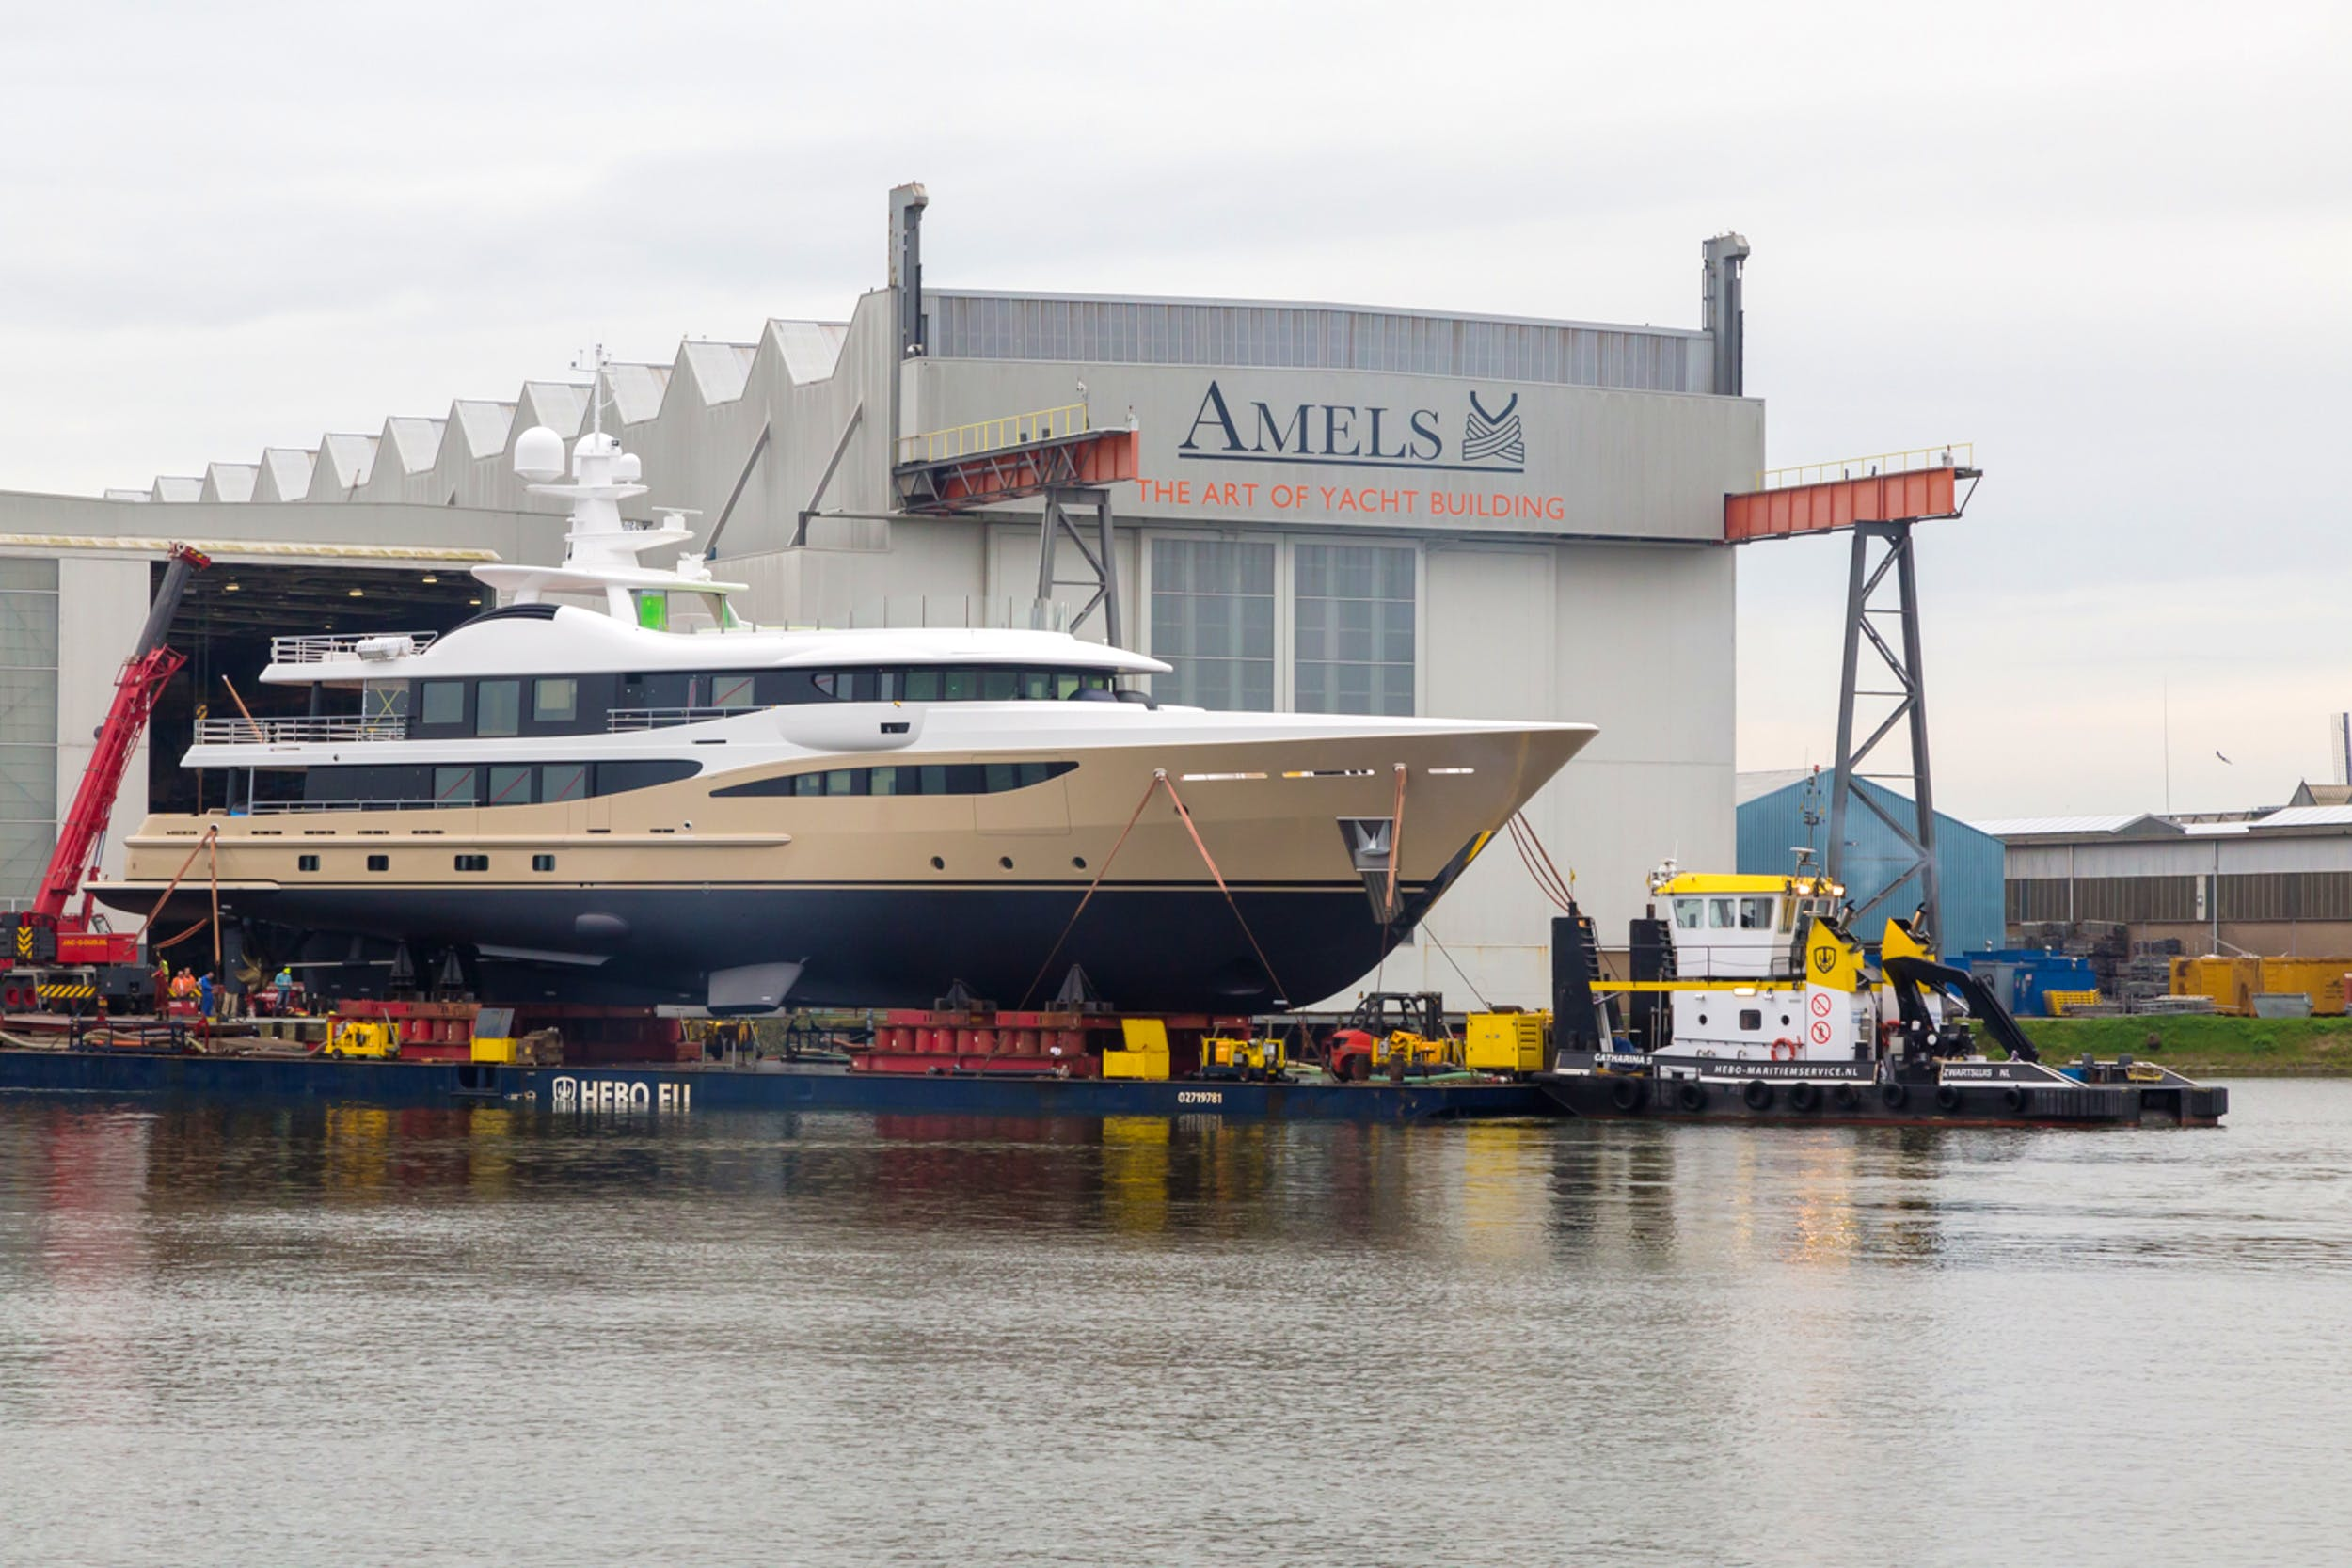 Imperial and Amels launch 55m LILI